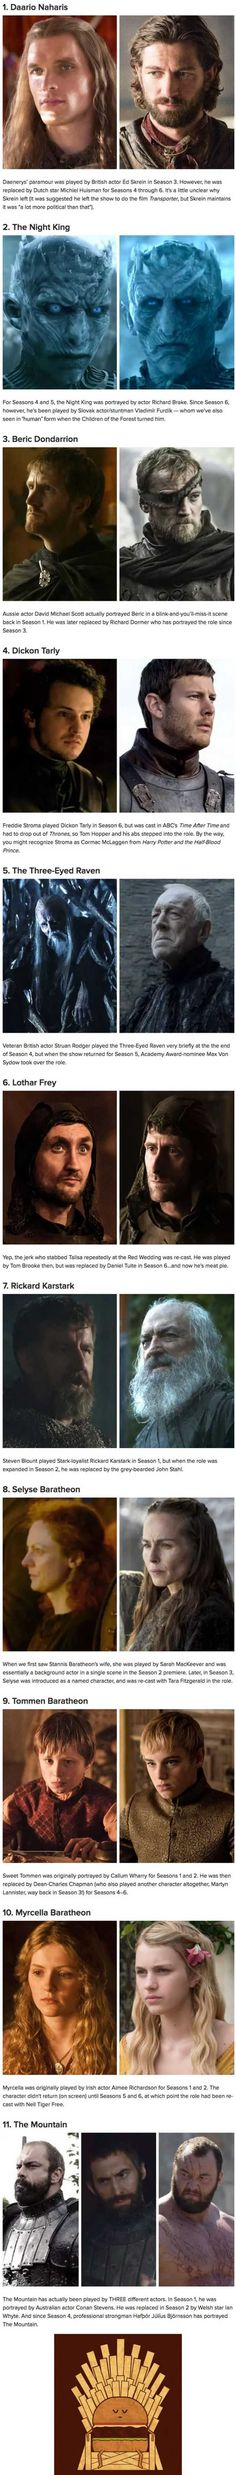 """11 """"Game Of Thrones"""" Characters that were re-casted - Imgur"""